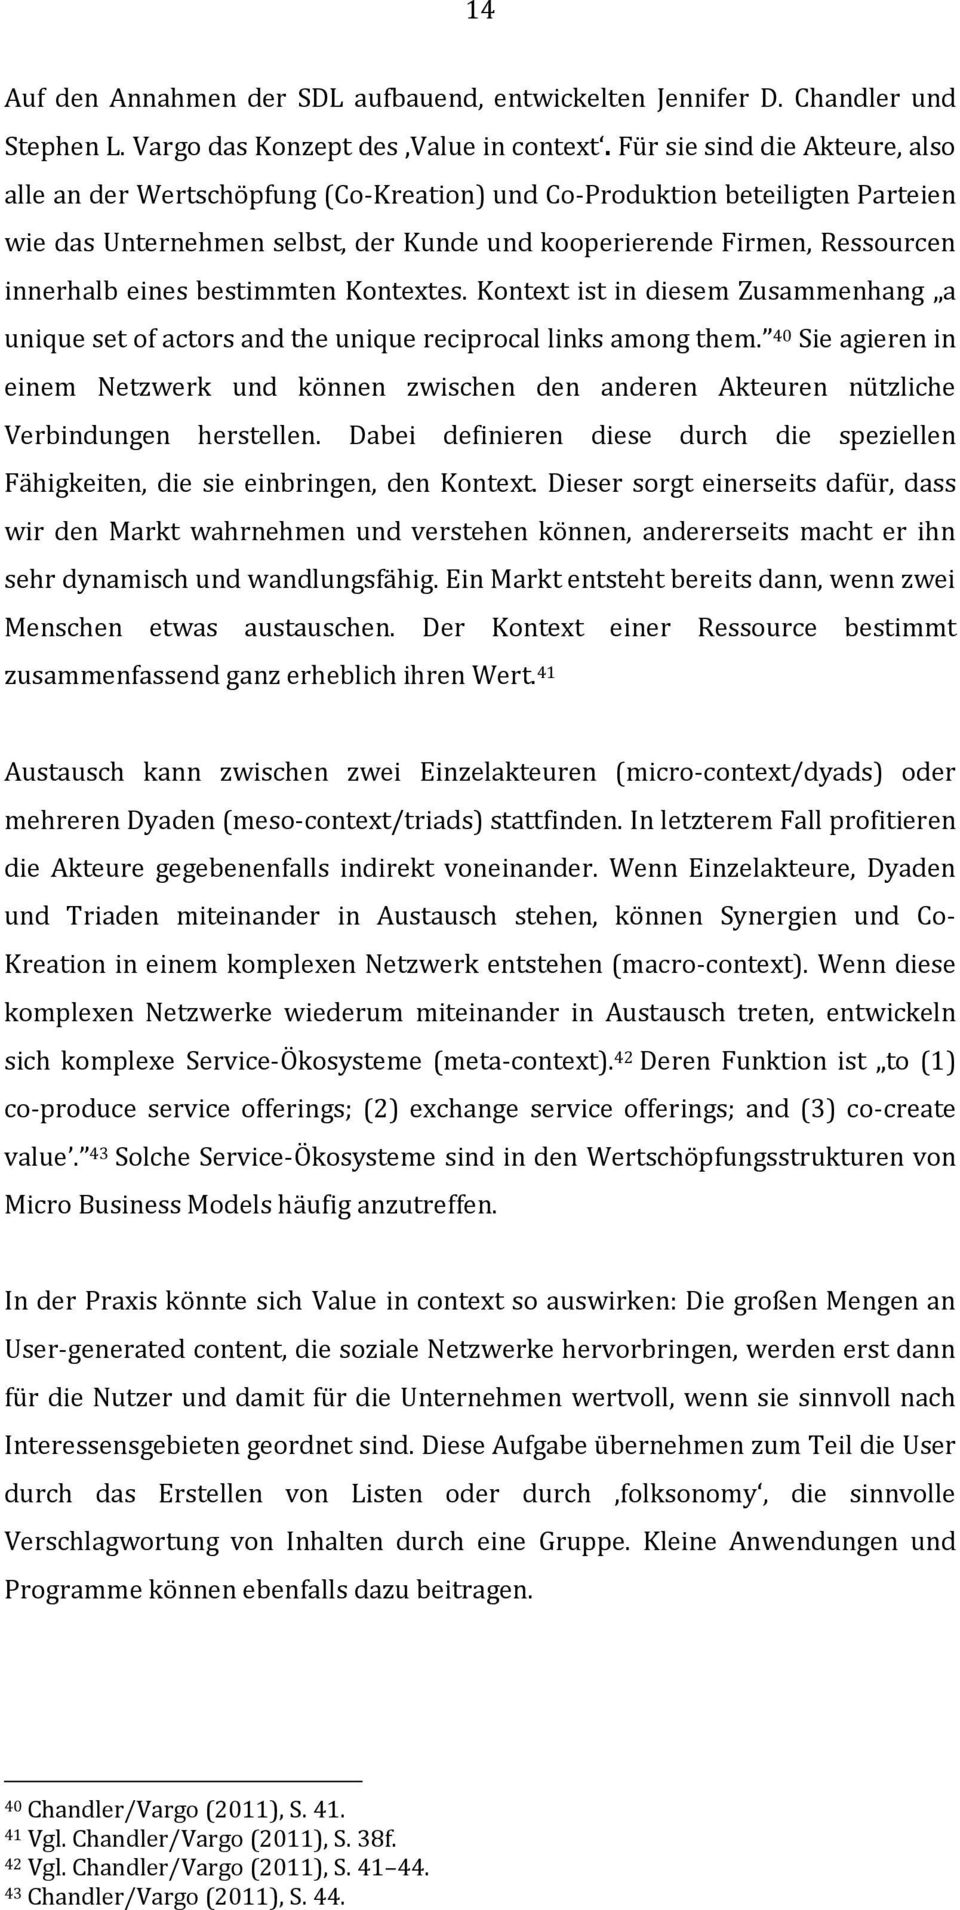 eines bestimmten Kontextes. Kontext ist in diesem Zusammenhang a unique set of actors and the unique reciprocal links among them.